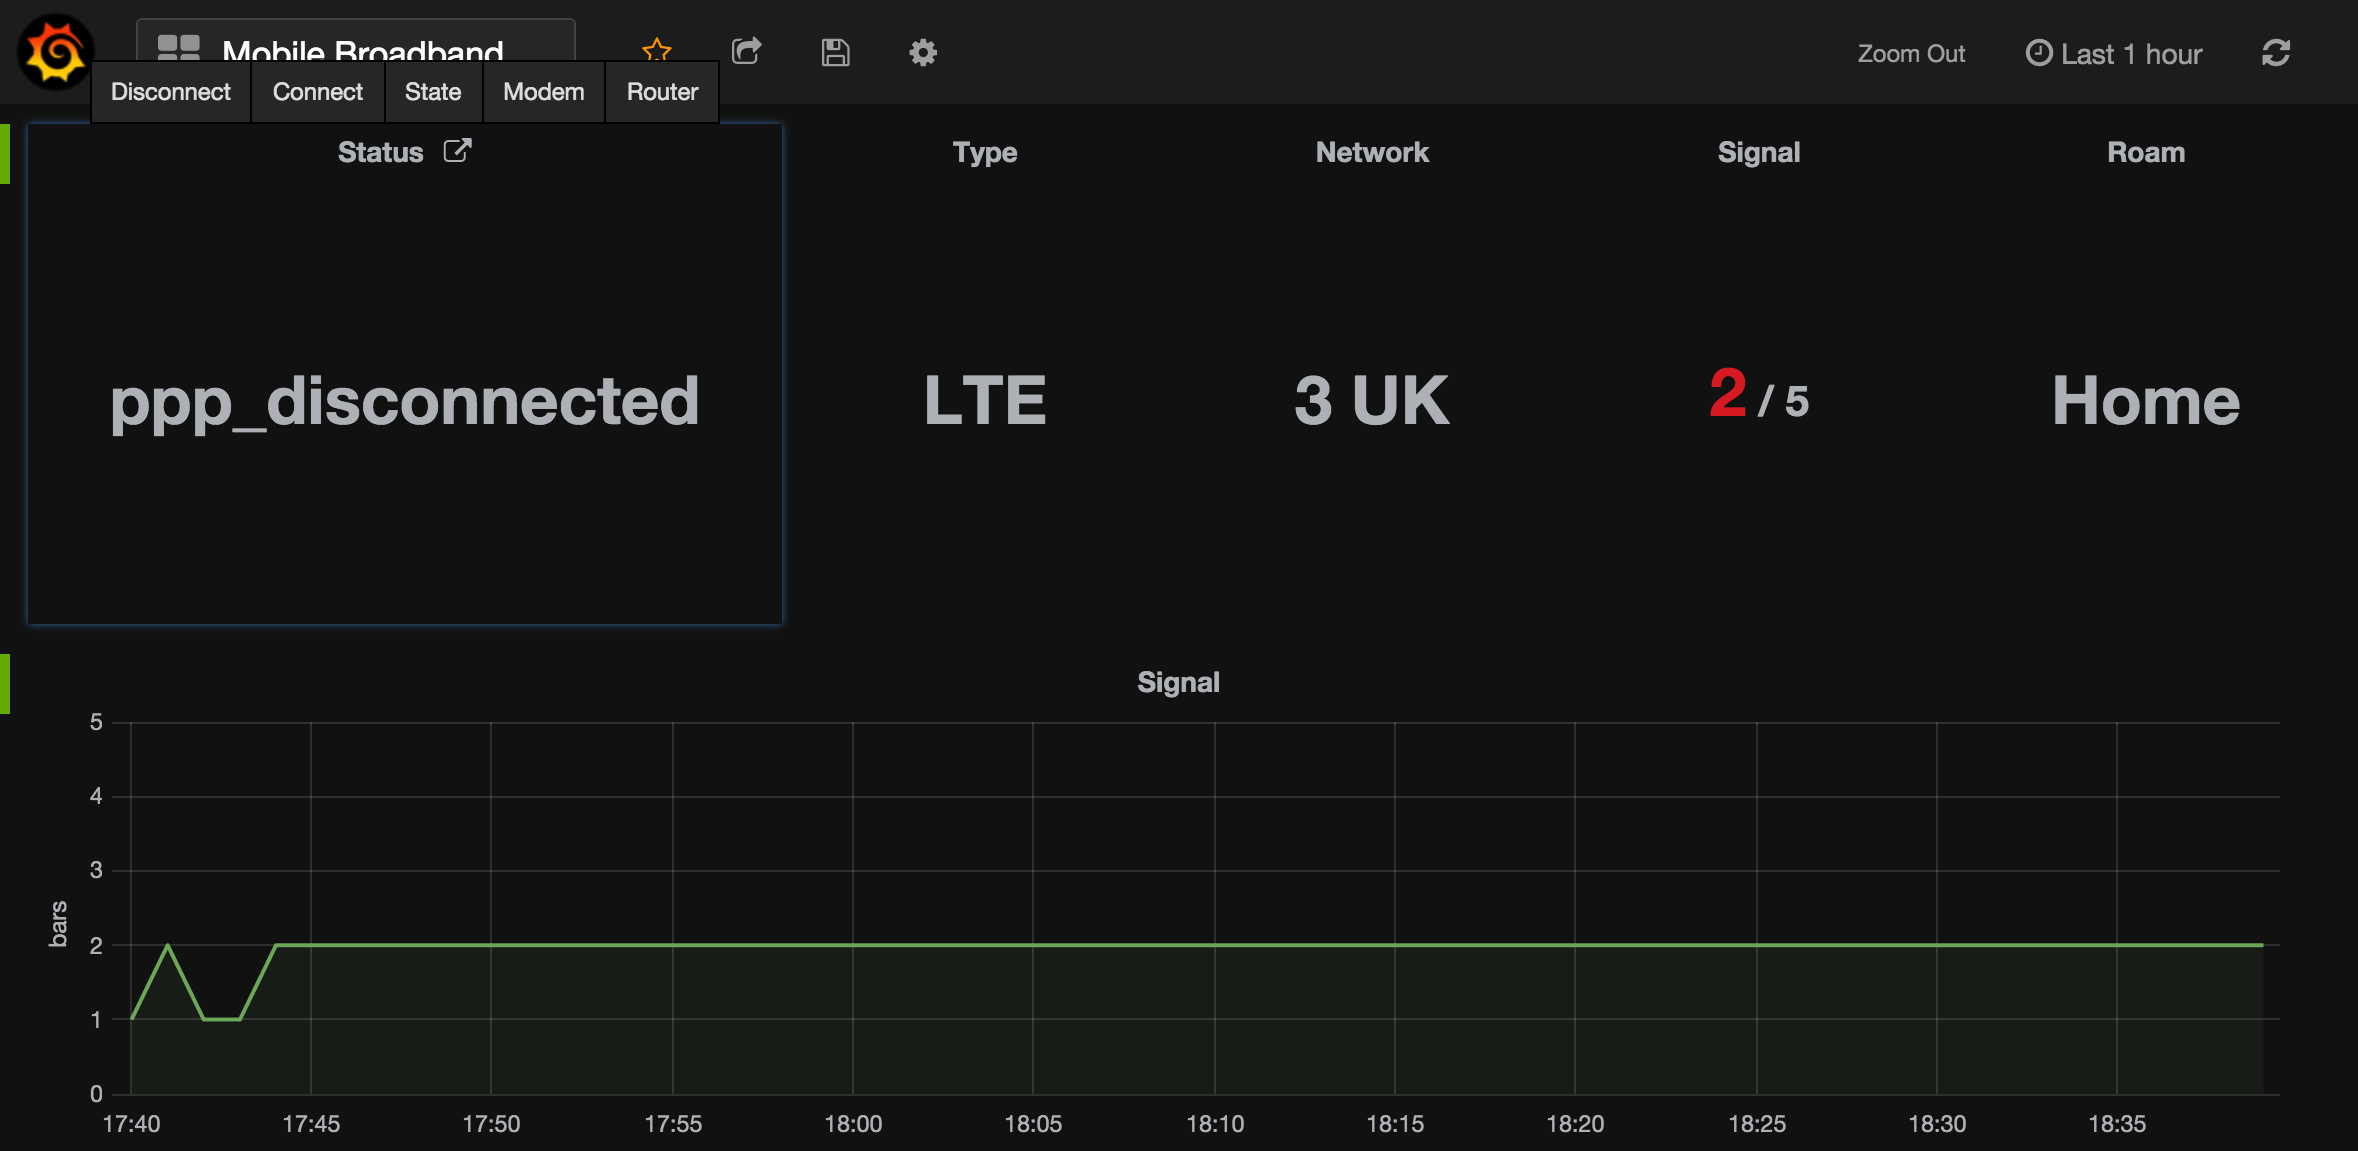 Mobile broadband dashboard